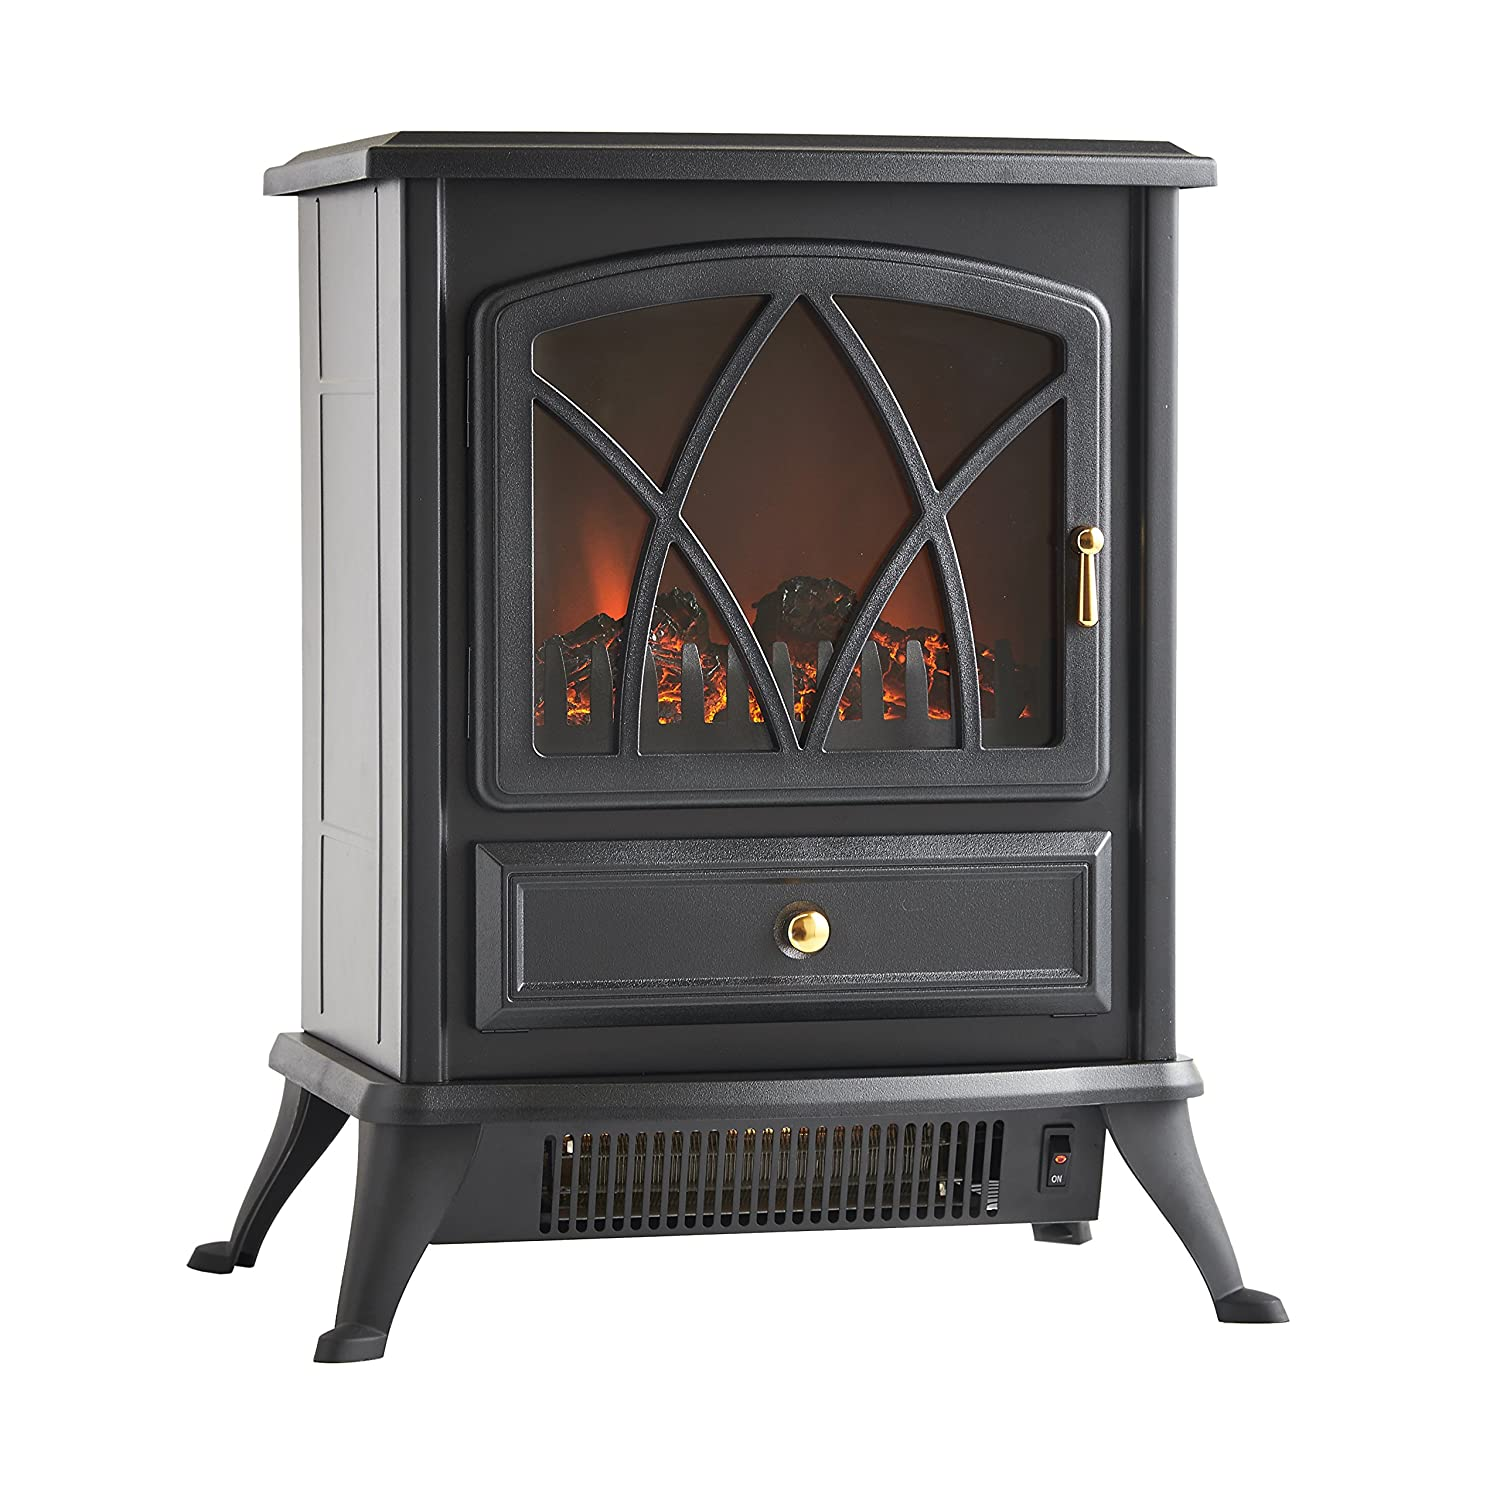 Amazon.com: VonHaus 1500W Portable Electric Stove Heater Fireplace with Log  Burning Flame Effect, Black: Home & Kitchen - Amazon.com: VonHaus 1500W Portable Electric Stove Heater Fireplace